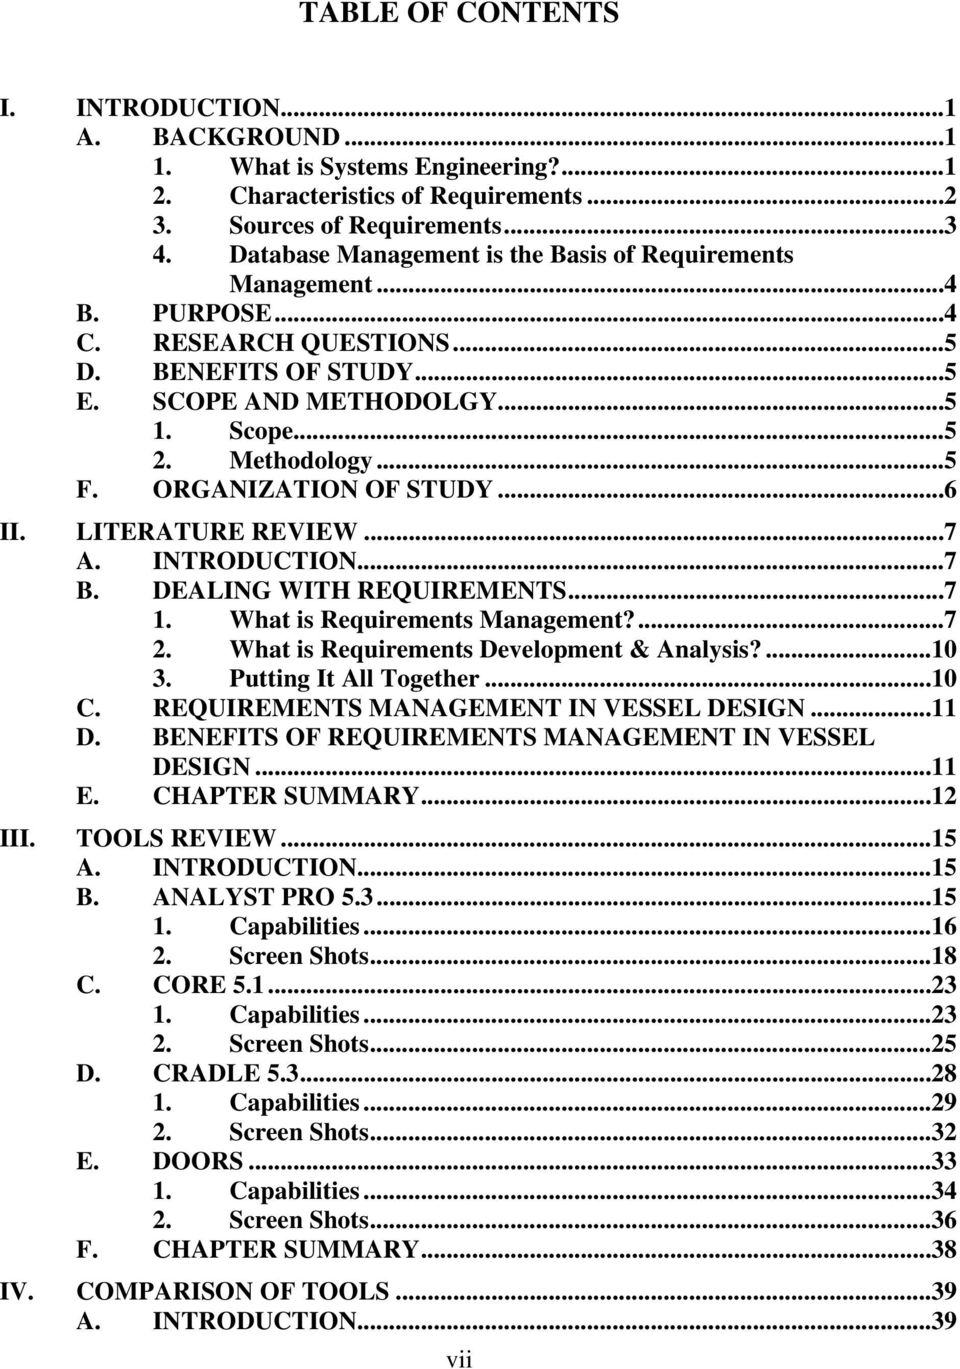 ORGANIZATION OF STUDY...6 II. LITERATURE REVIEW...7 A. INTRODUCTION...7 B. DEALING WITH REQUIREMENTS...7 1. What is Requirements Management?...7 2. What is Requirements Development & Analysis?...10 3.